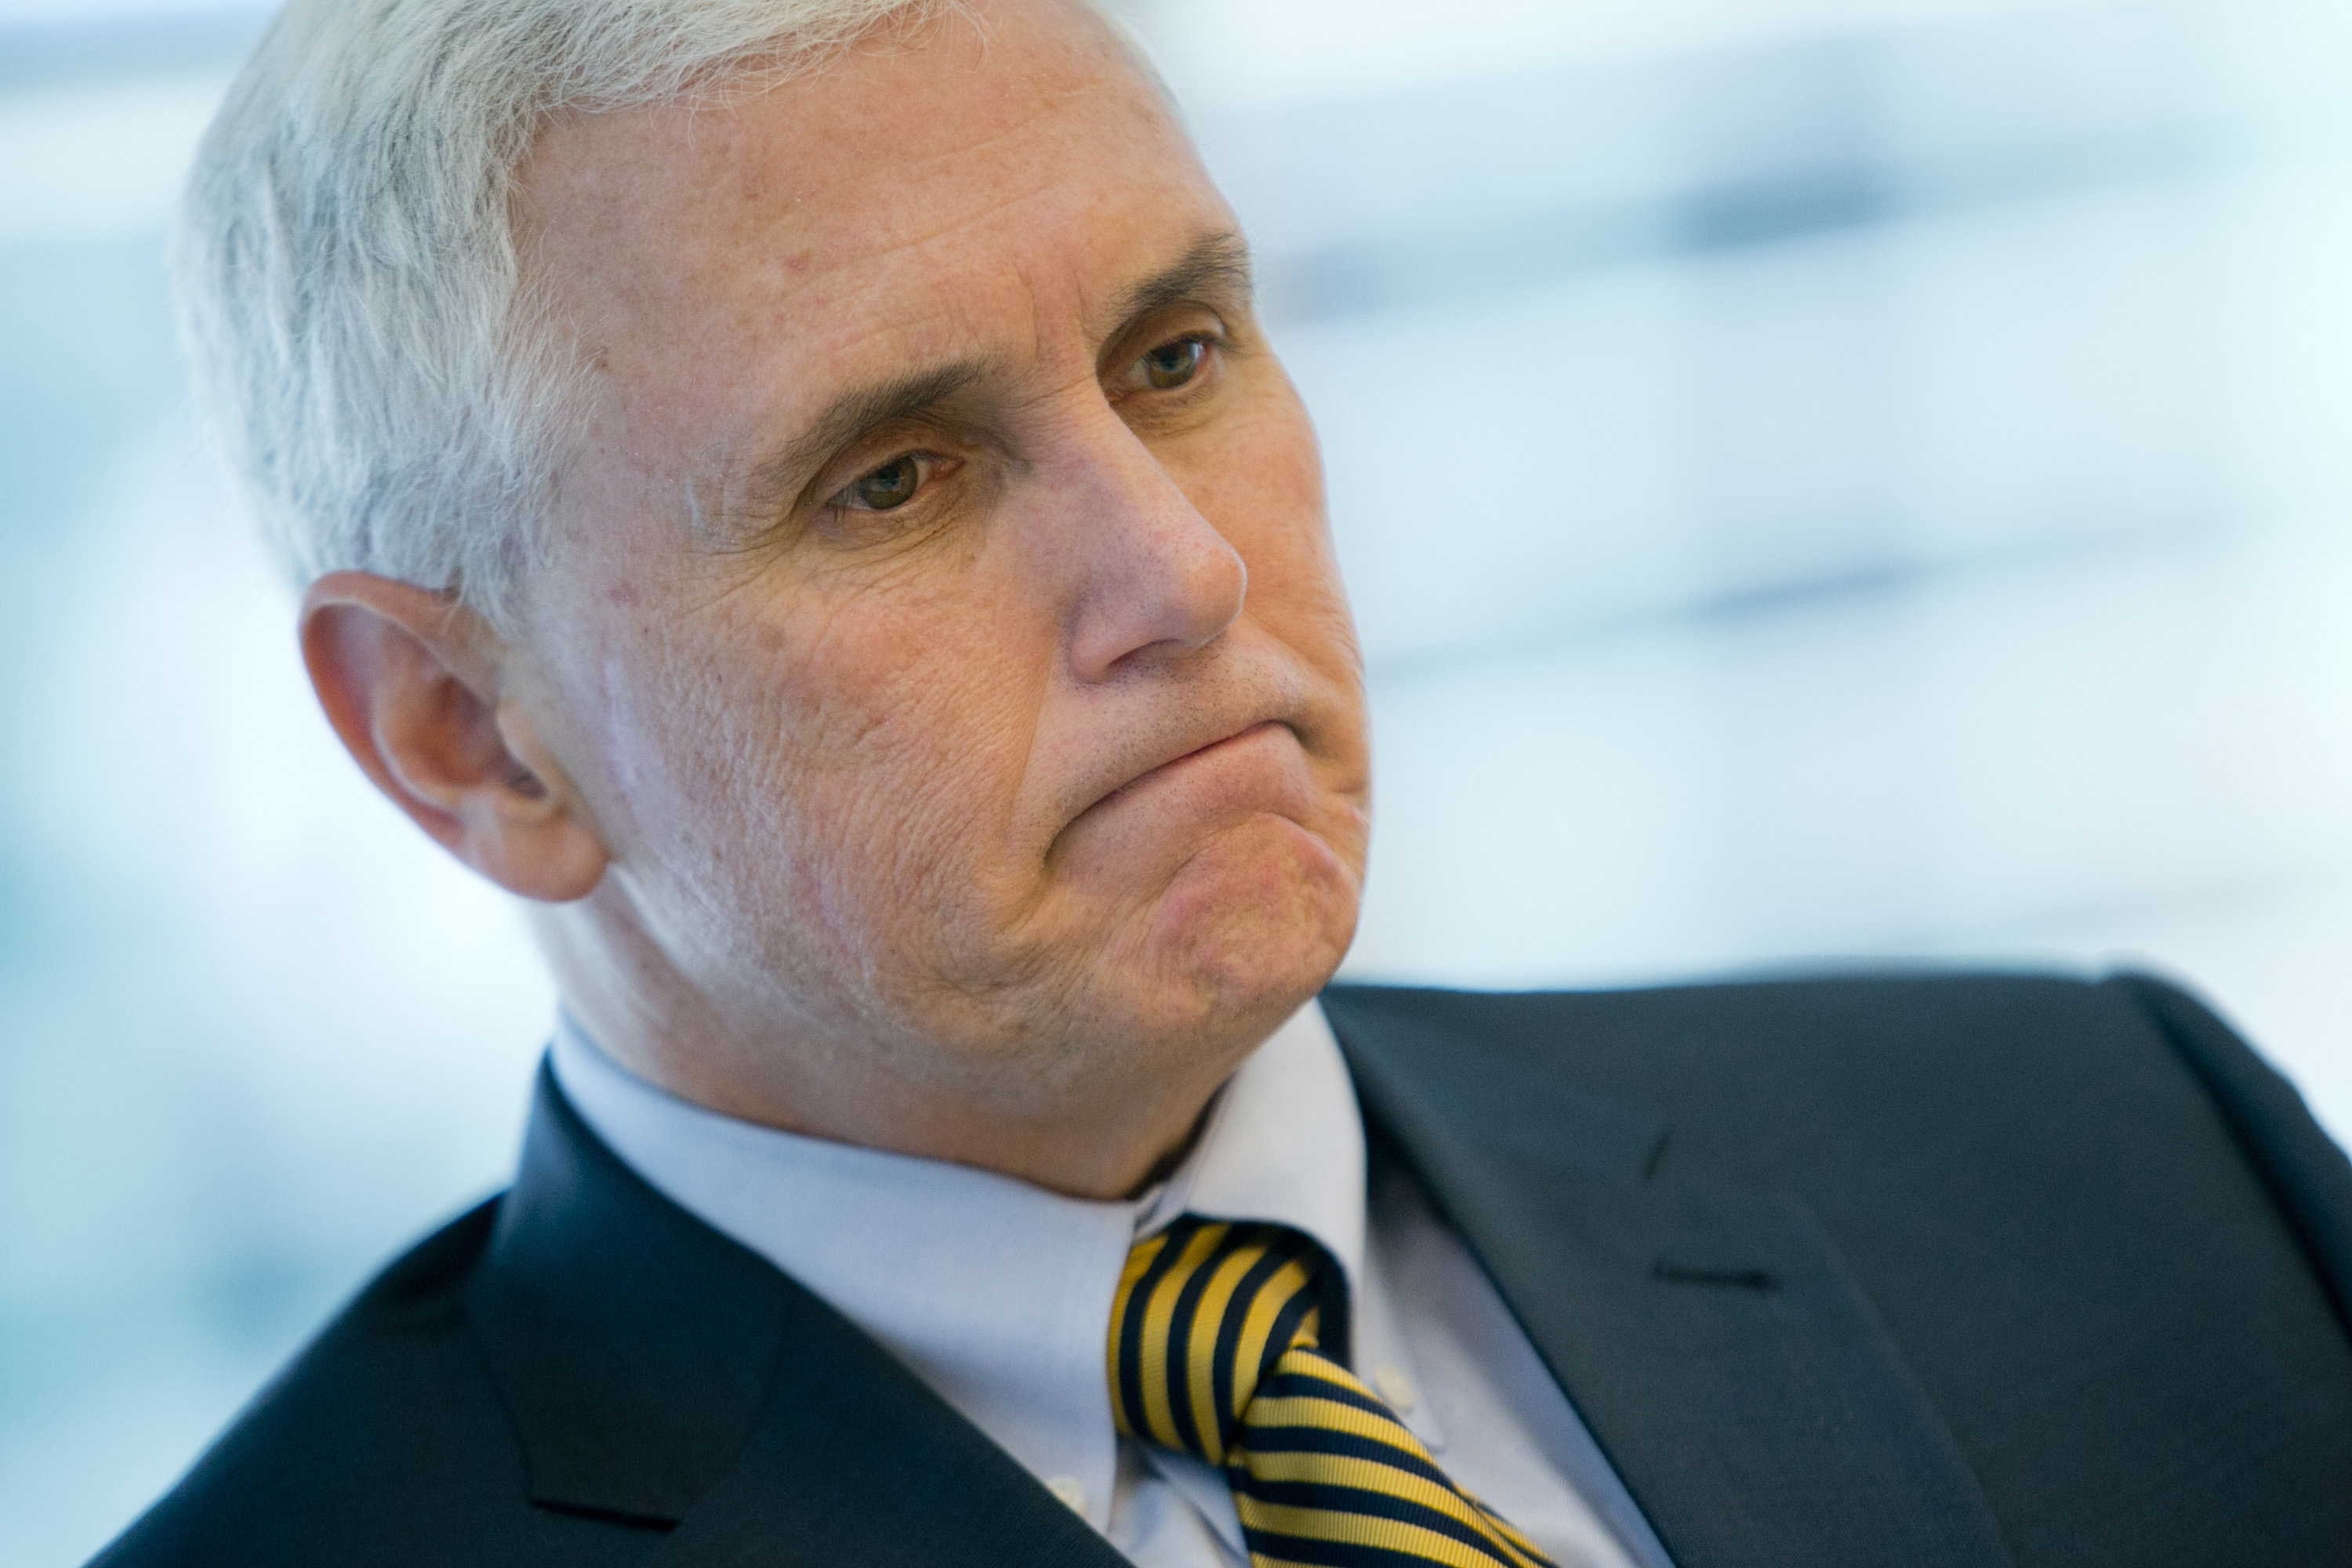 Indiana Gov. Mike Pence during an interview in New York, on Thursday, May 16, 2013. MUST CREDIT: Bloomberg photo by Andrew Harrer.